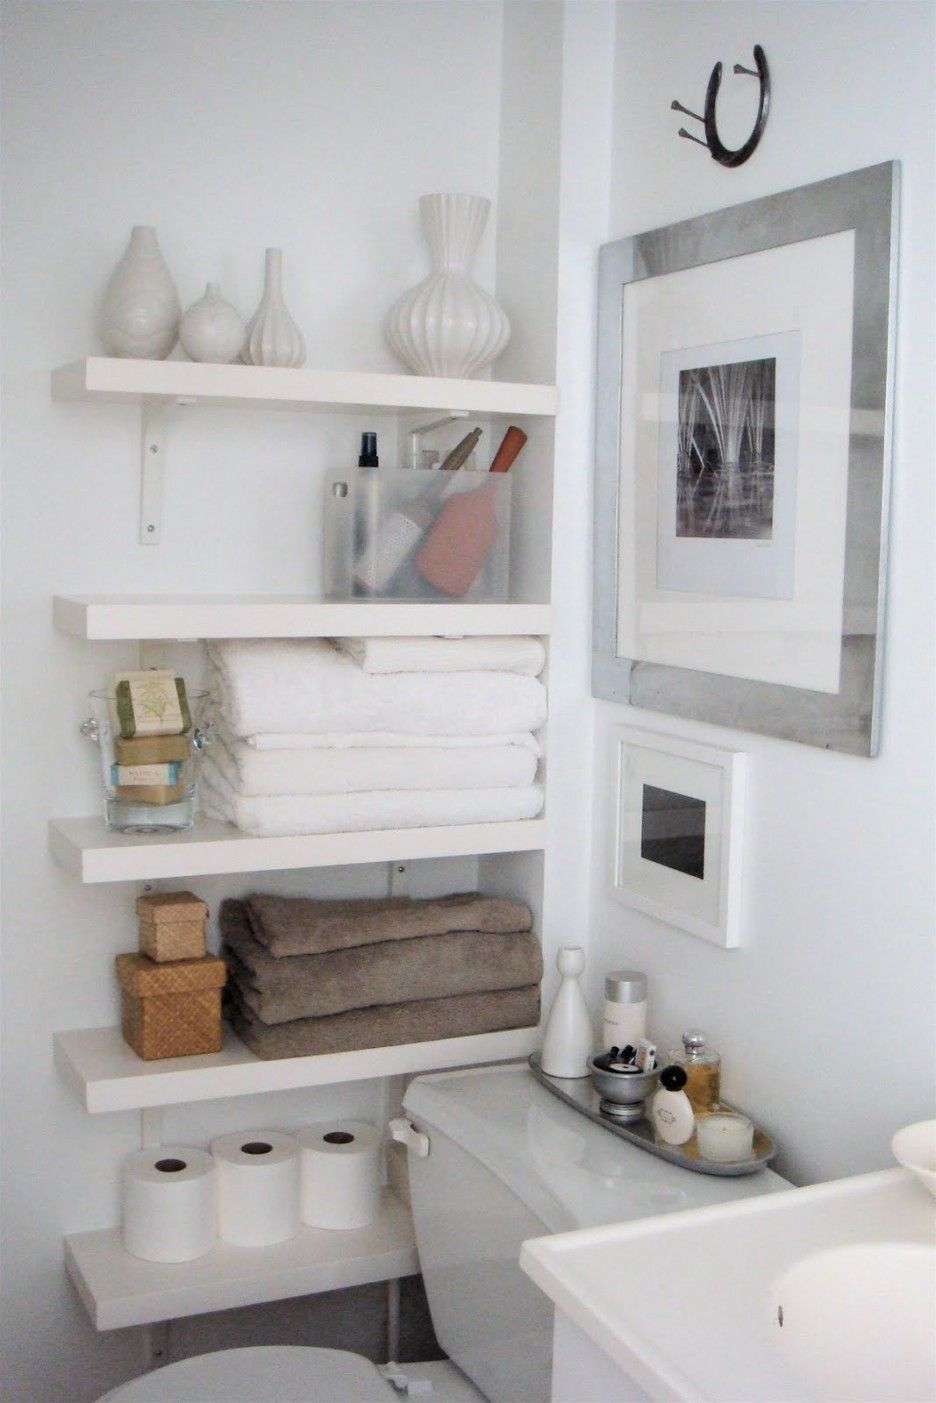 Small Space Organizing Shelving Instant Bathroom Shelves Design Best Storage Small Bathroom Design Ideas